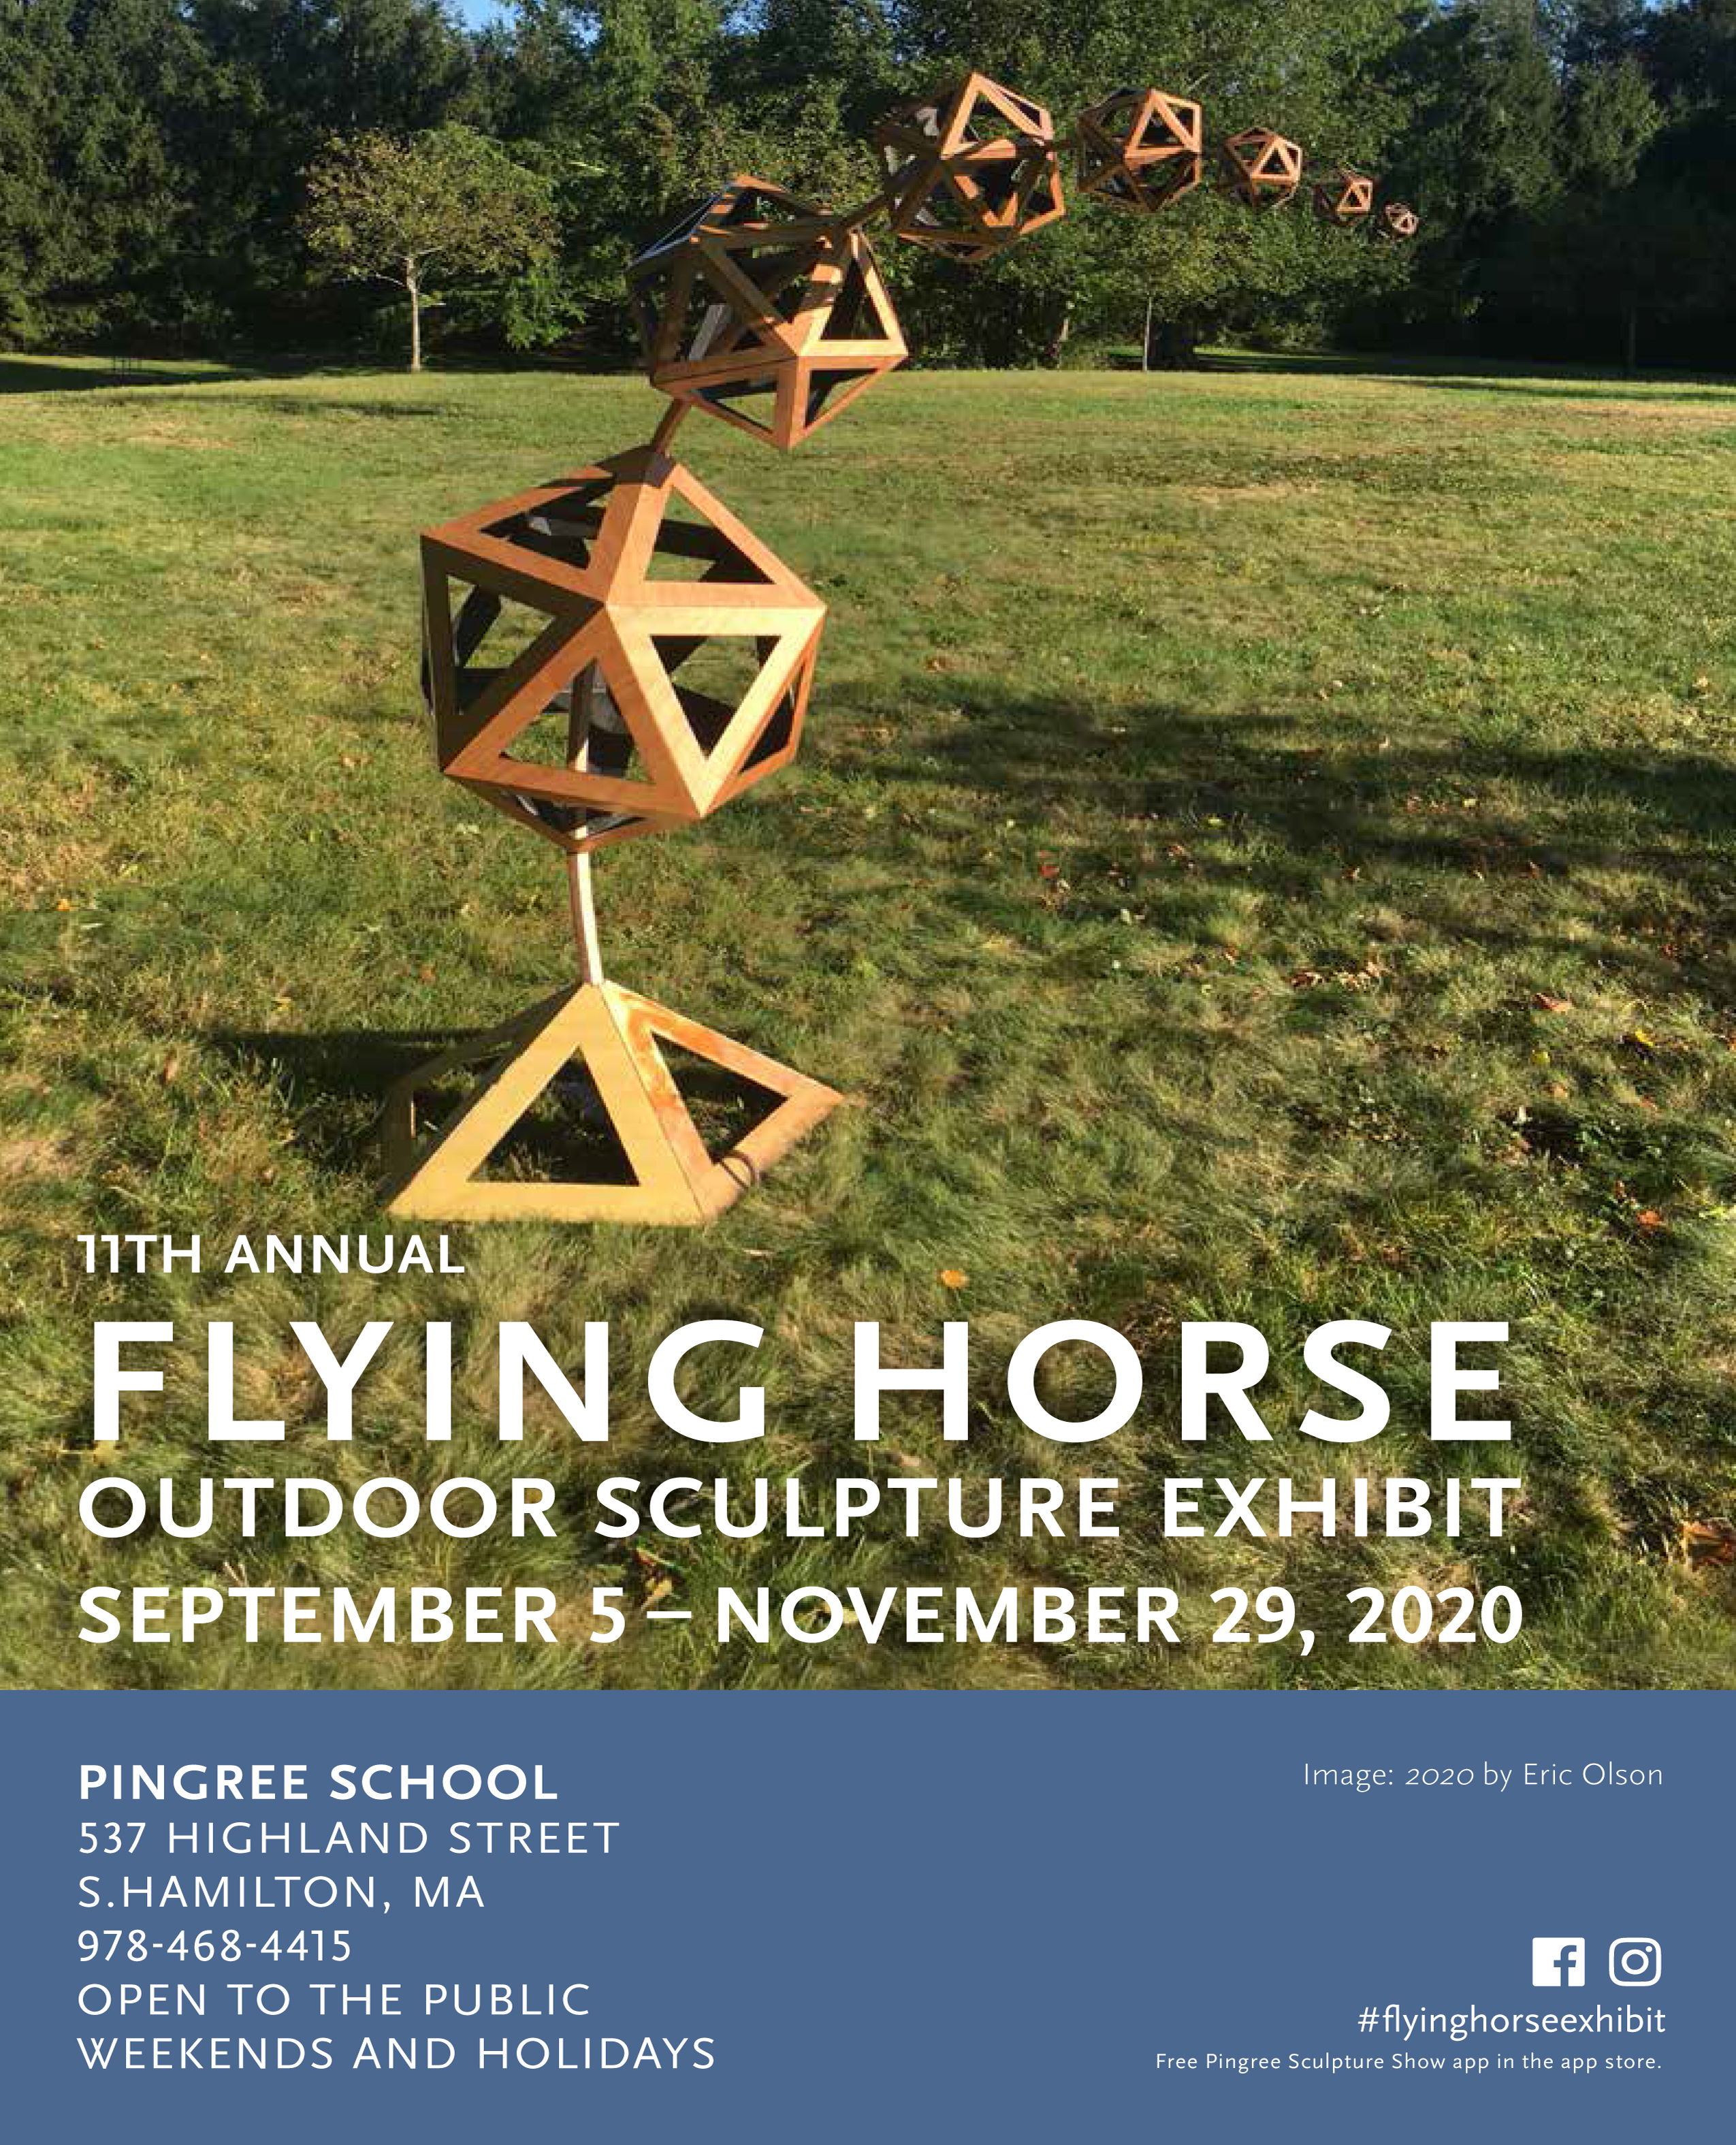 Pingree_Sculpture_poster_2020_2.jpg